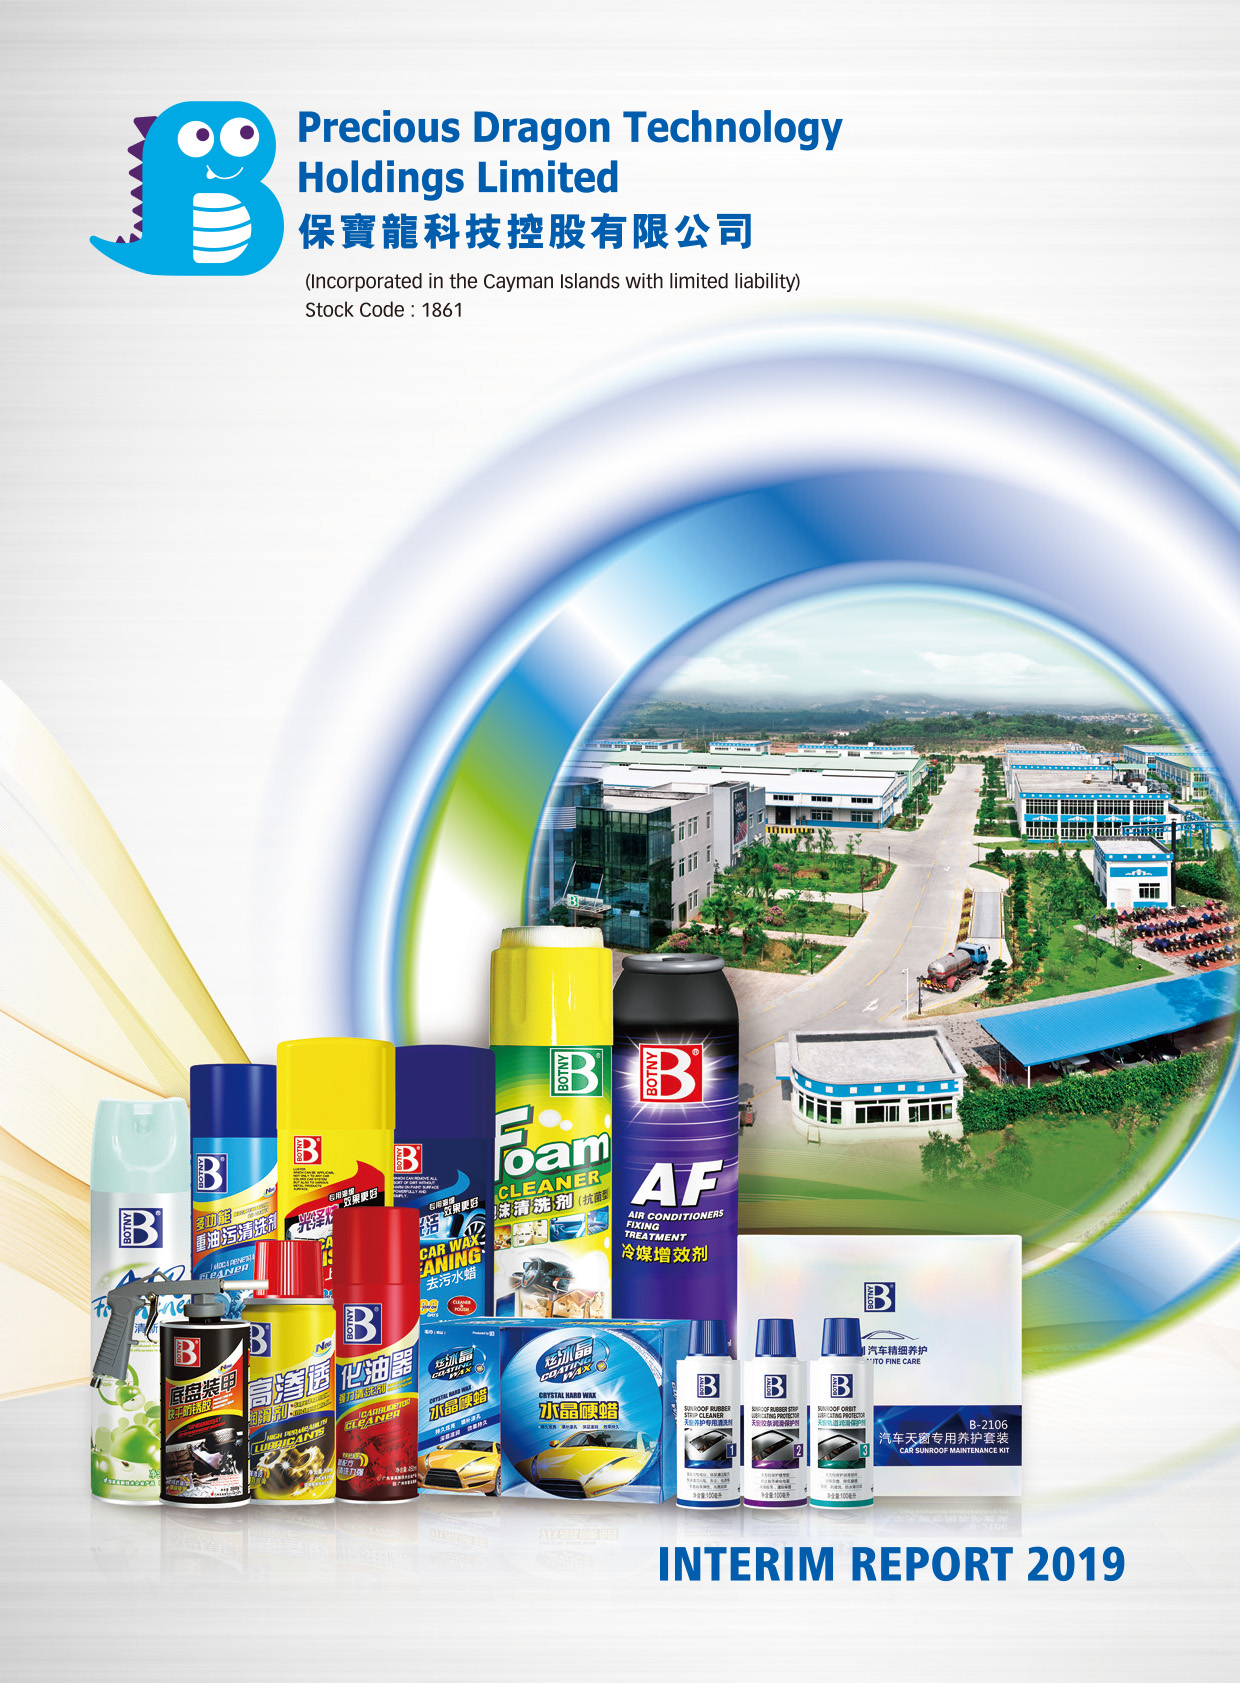 Precious Dragon Technology Holdings Limited